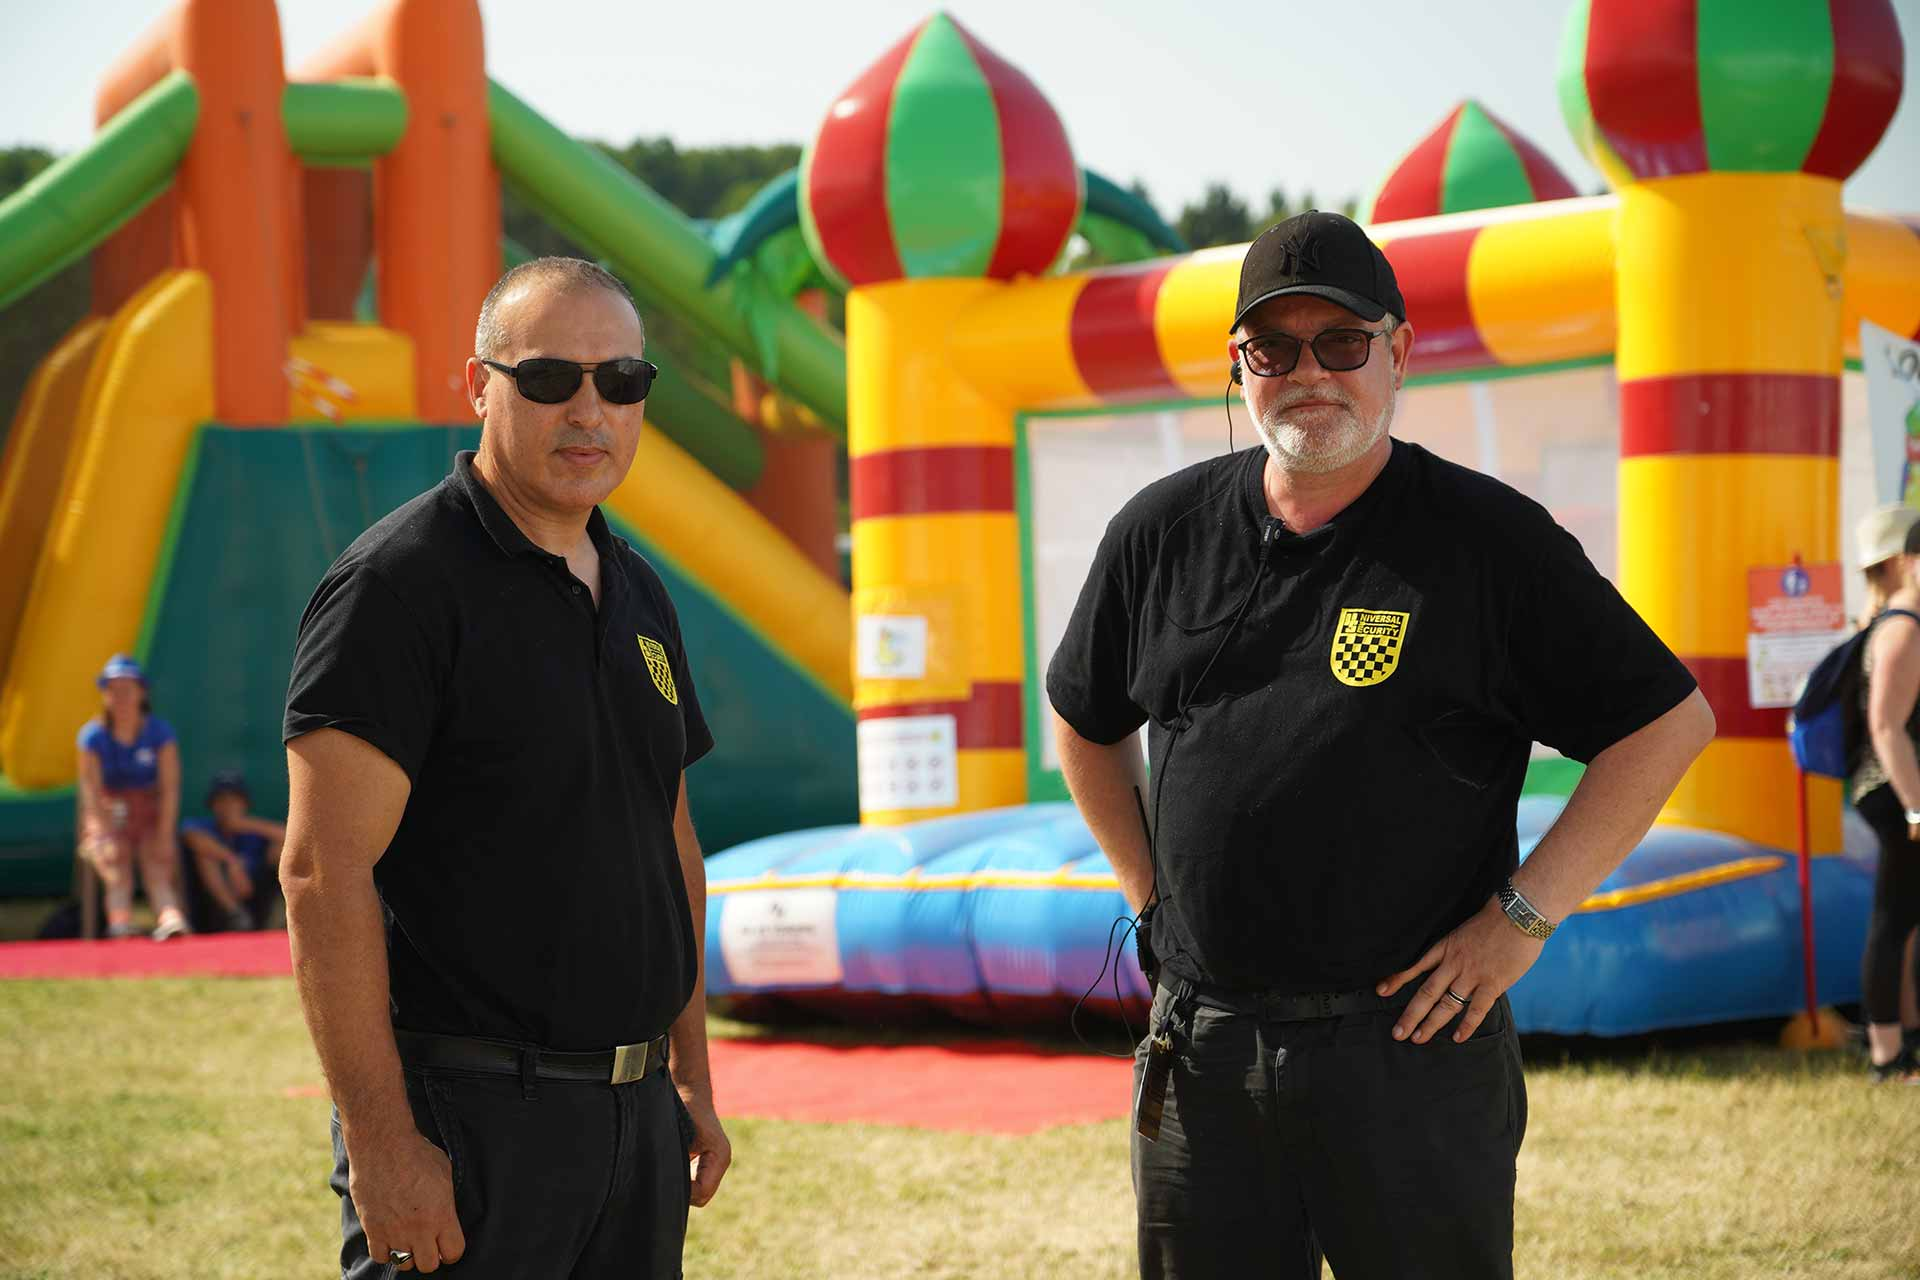 ordre-competence-festival-universal-security-normandie